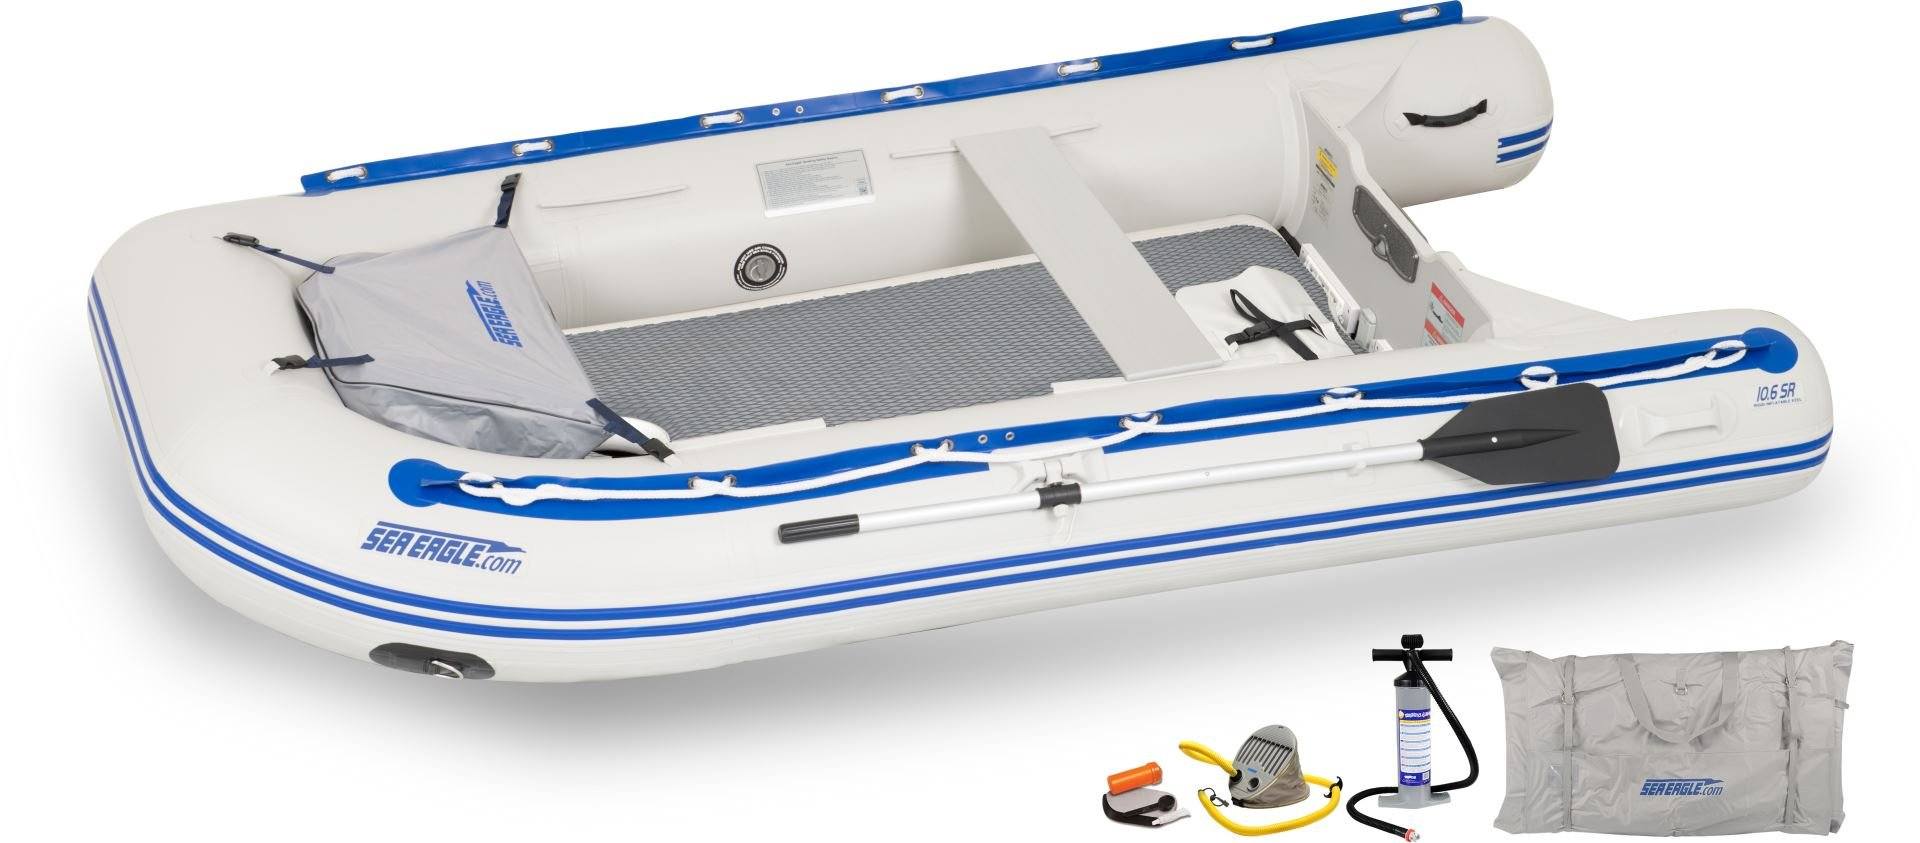 Sea Eagle 106SRKDT Transom Stop Stitch Deluxe Sport Runabout Boat Packages